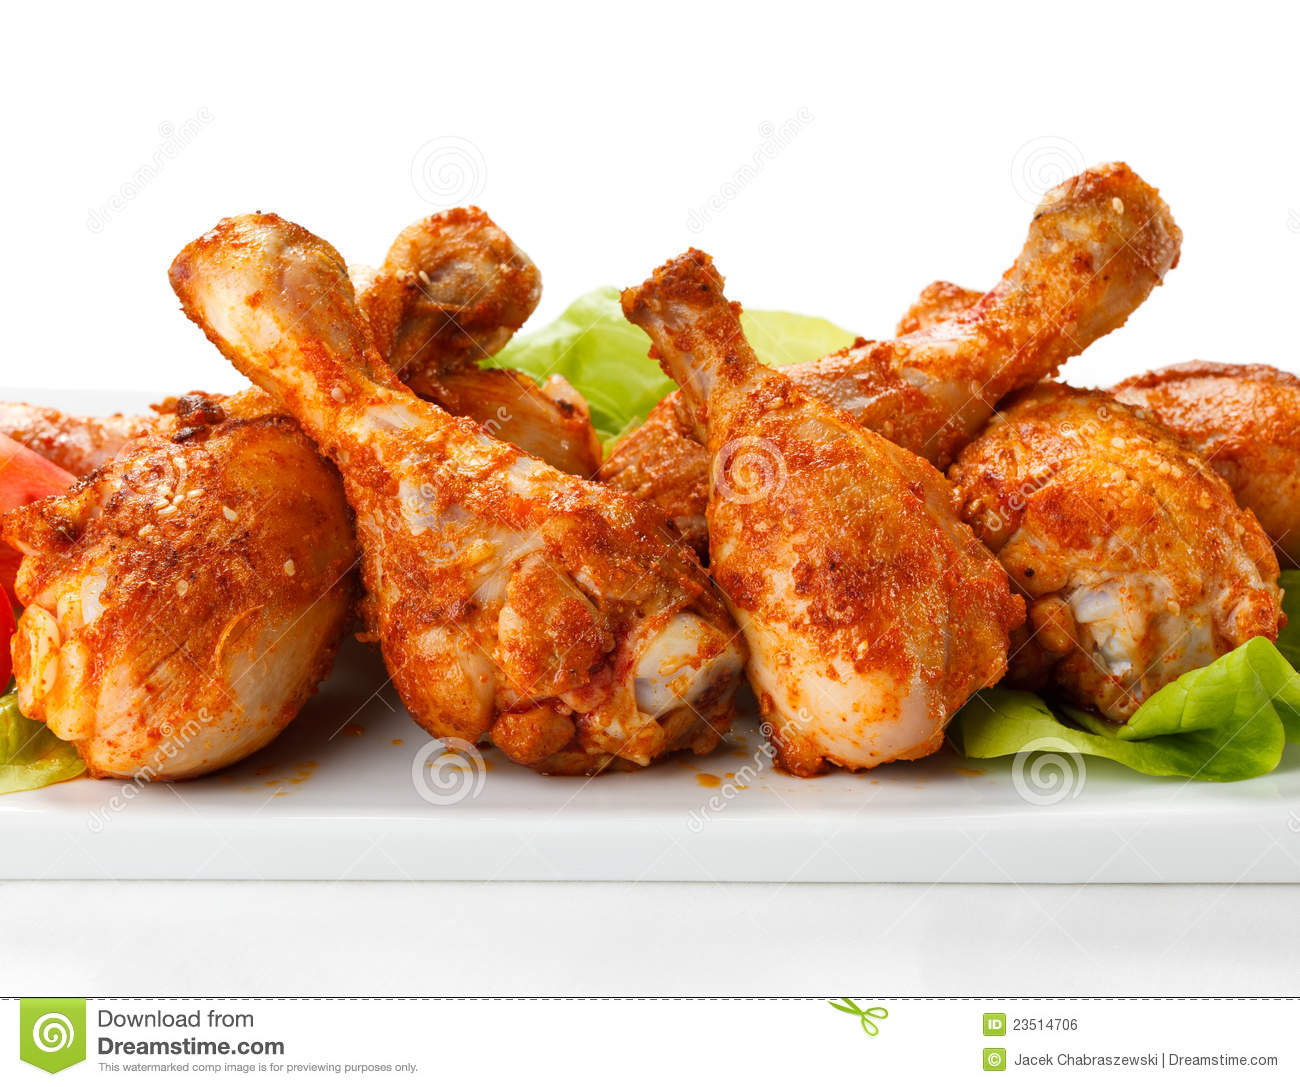 Roasted Chicken Drumsticks Royalty Free Stock Image - Image: 23514706